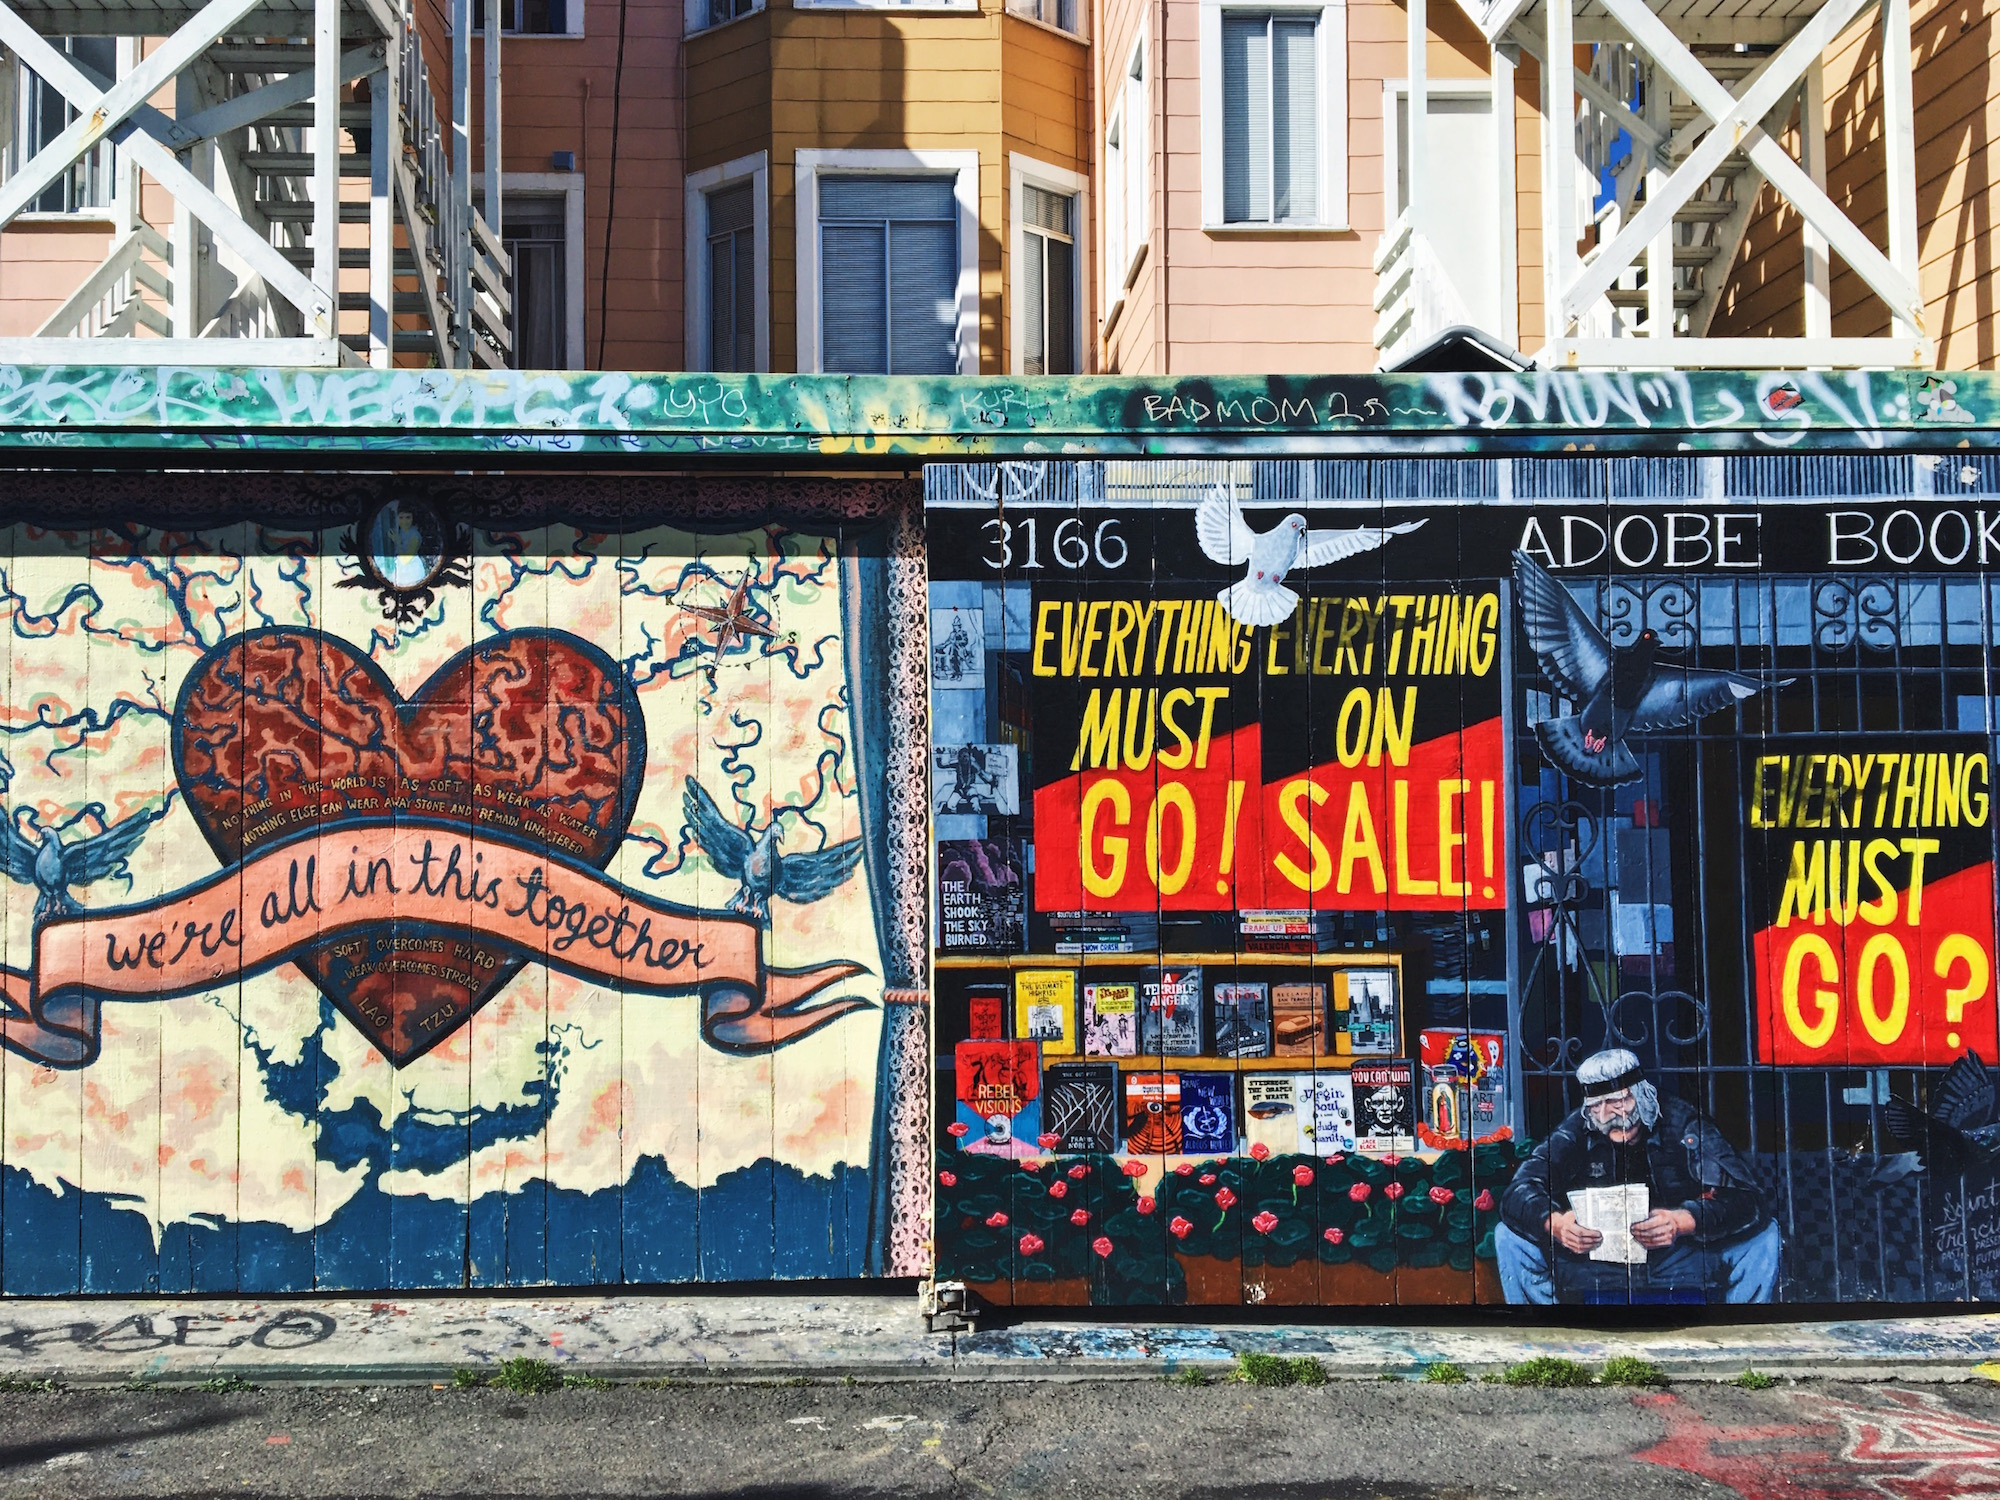 Clarion Alley - Murales nel quartiere Mission di San Francisco - Everything must go (2015) - We're all in this together